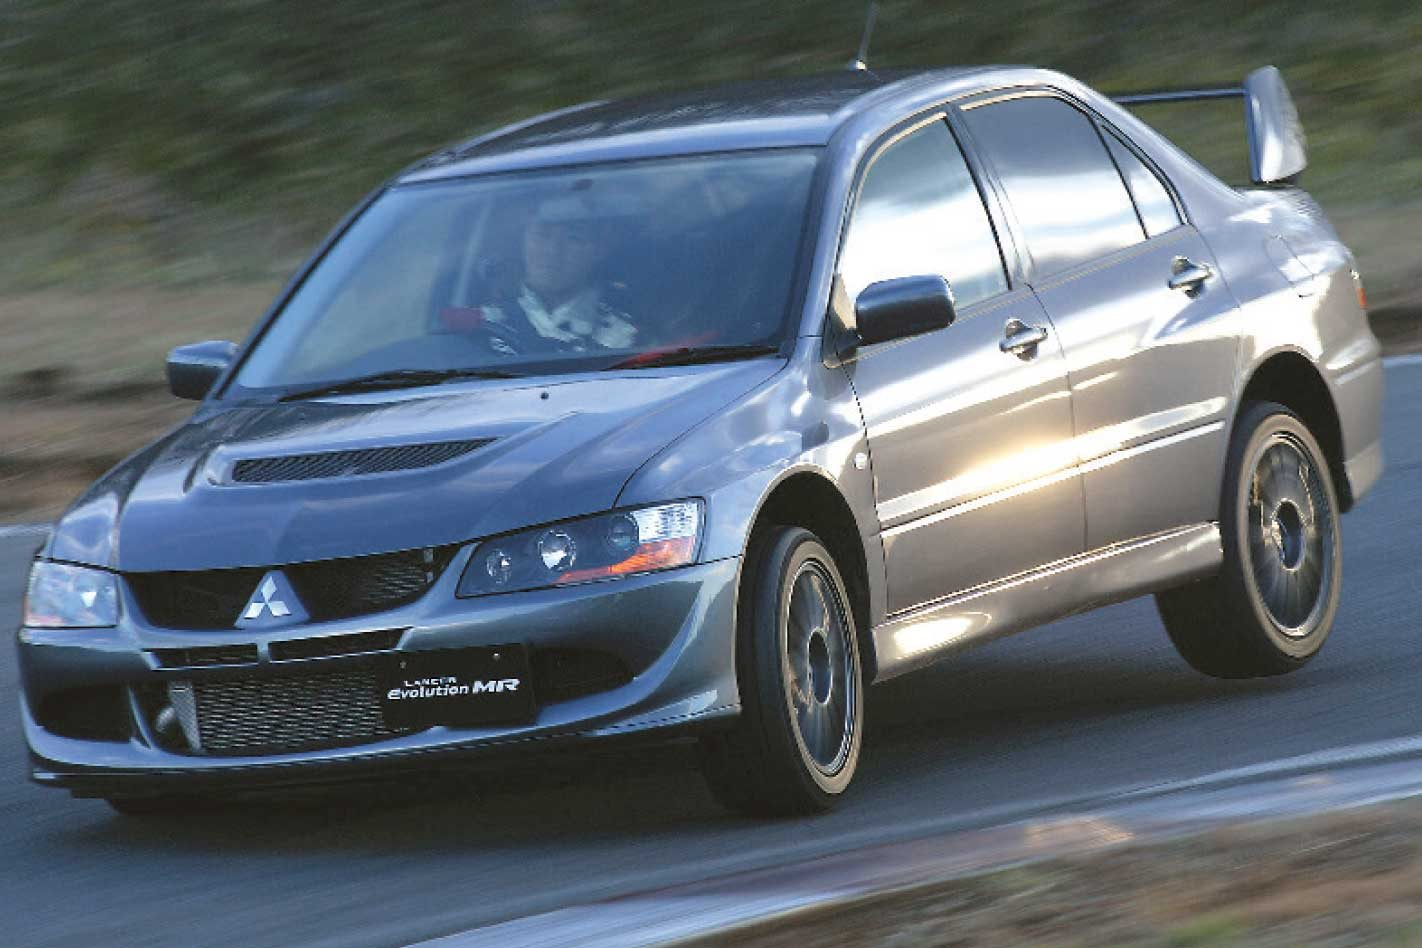 2004 mitsubishi lancer evolution viii mr review classic motor